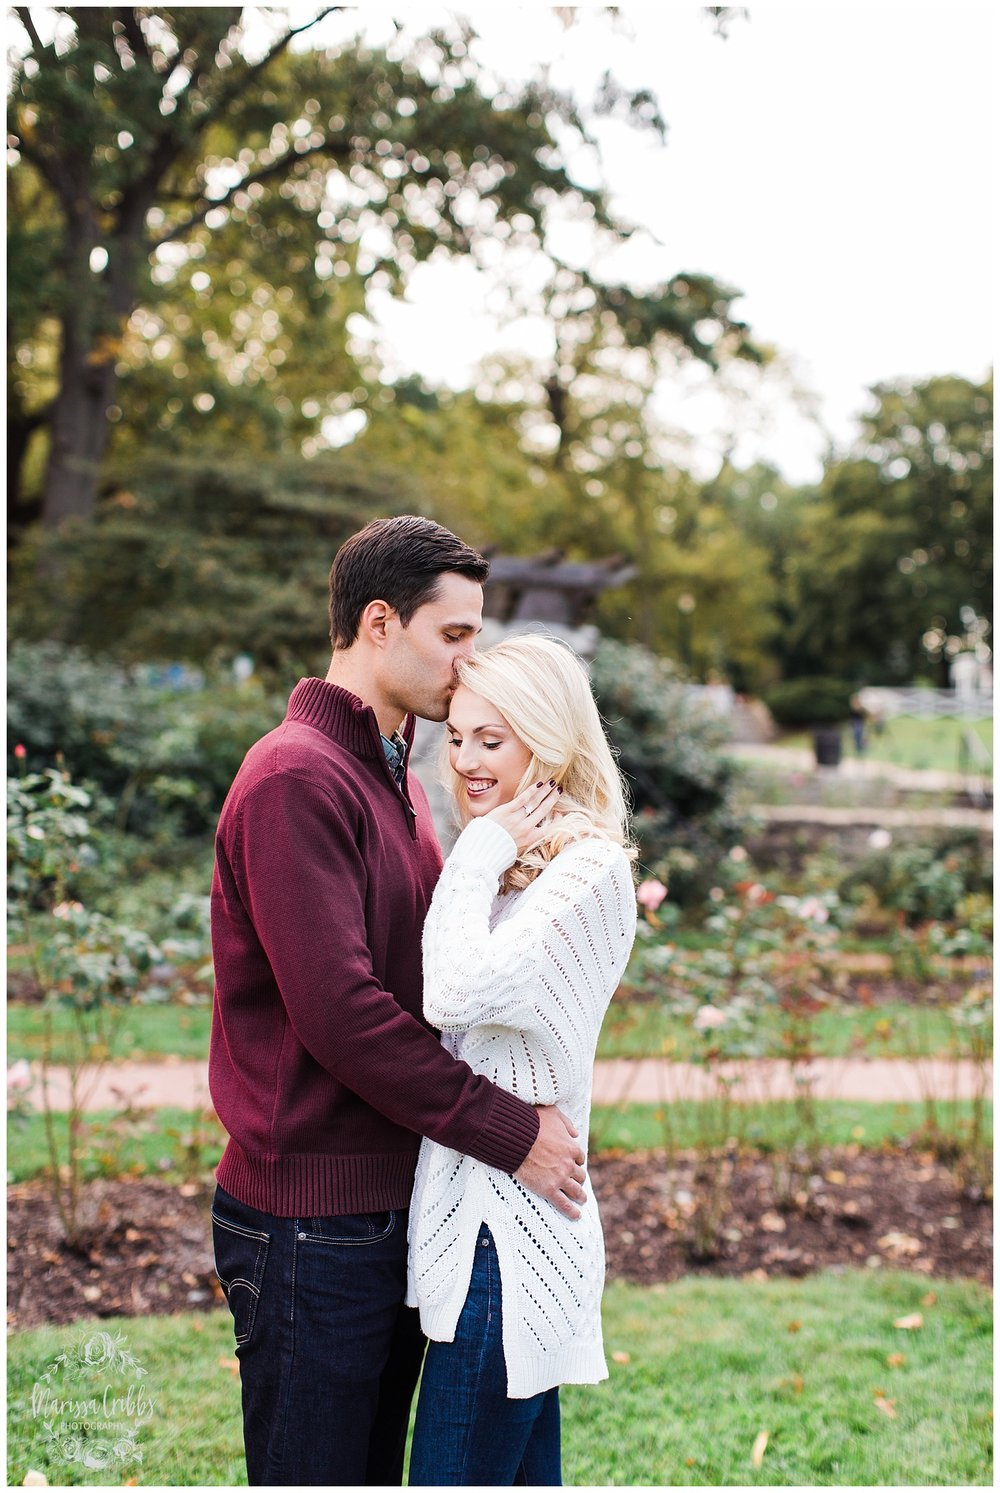 CLOE & GABE LIBERTY MEMORIAL ENGAGEMENT | MARISSA CRIBBS PHOTOGRAPHY | LOOSE PARK ENGAGEMENT_3443.jpg